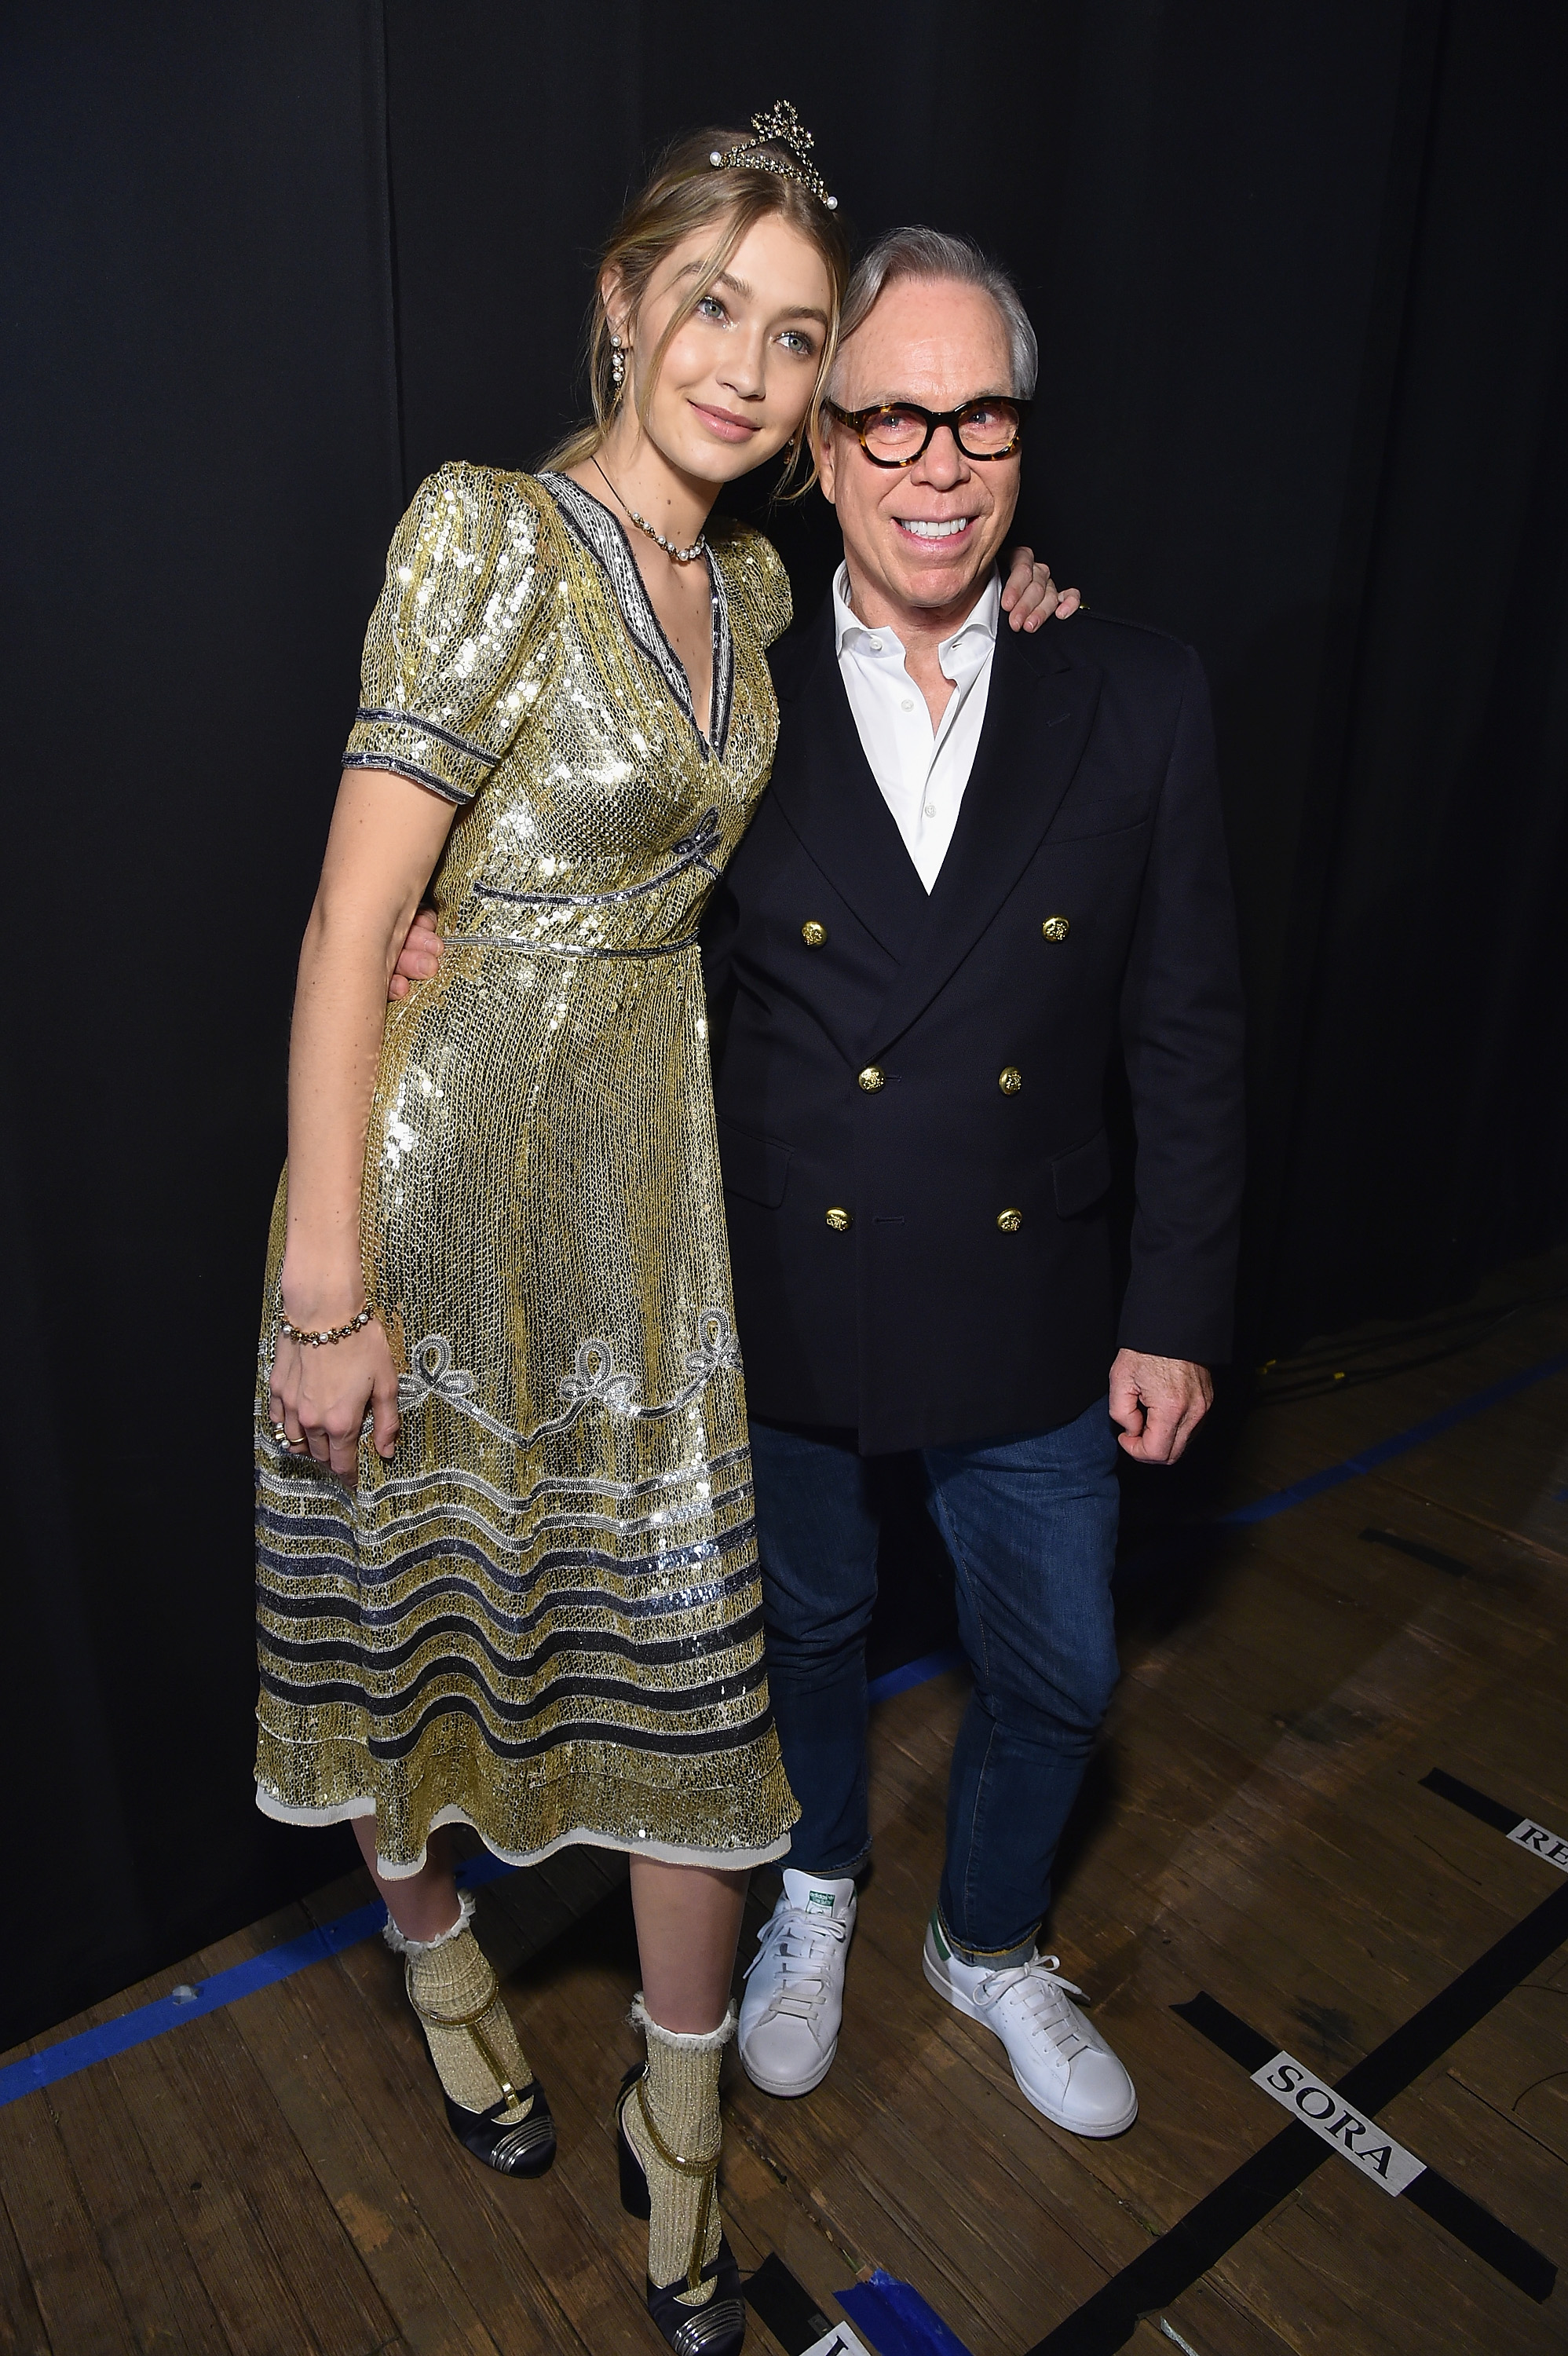 c1257c37023b2b Tommy Hilfiger Introduces New Runway Show Concept at New York Fashion Week